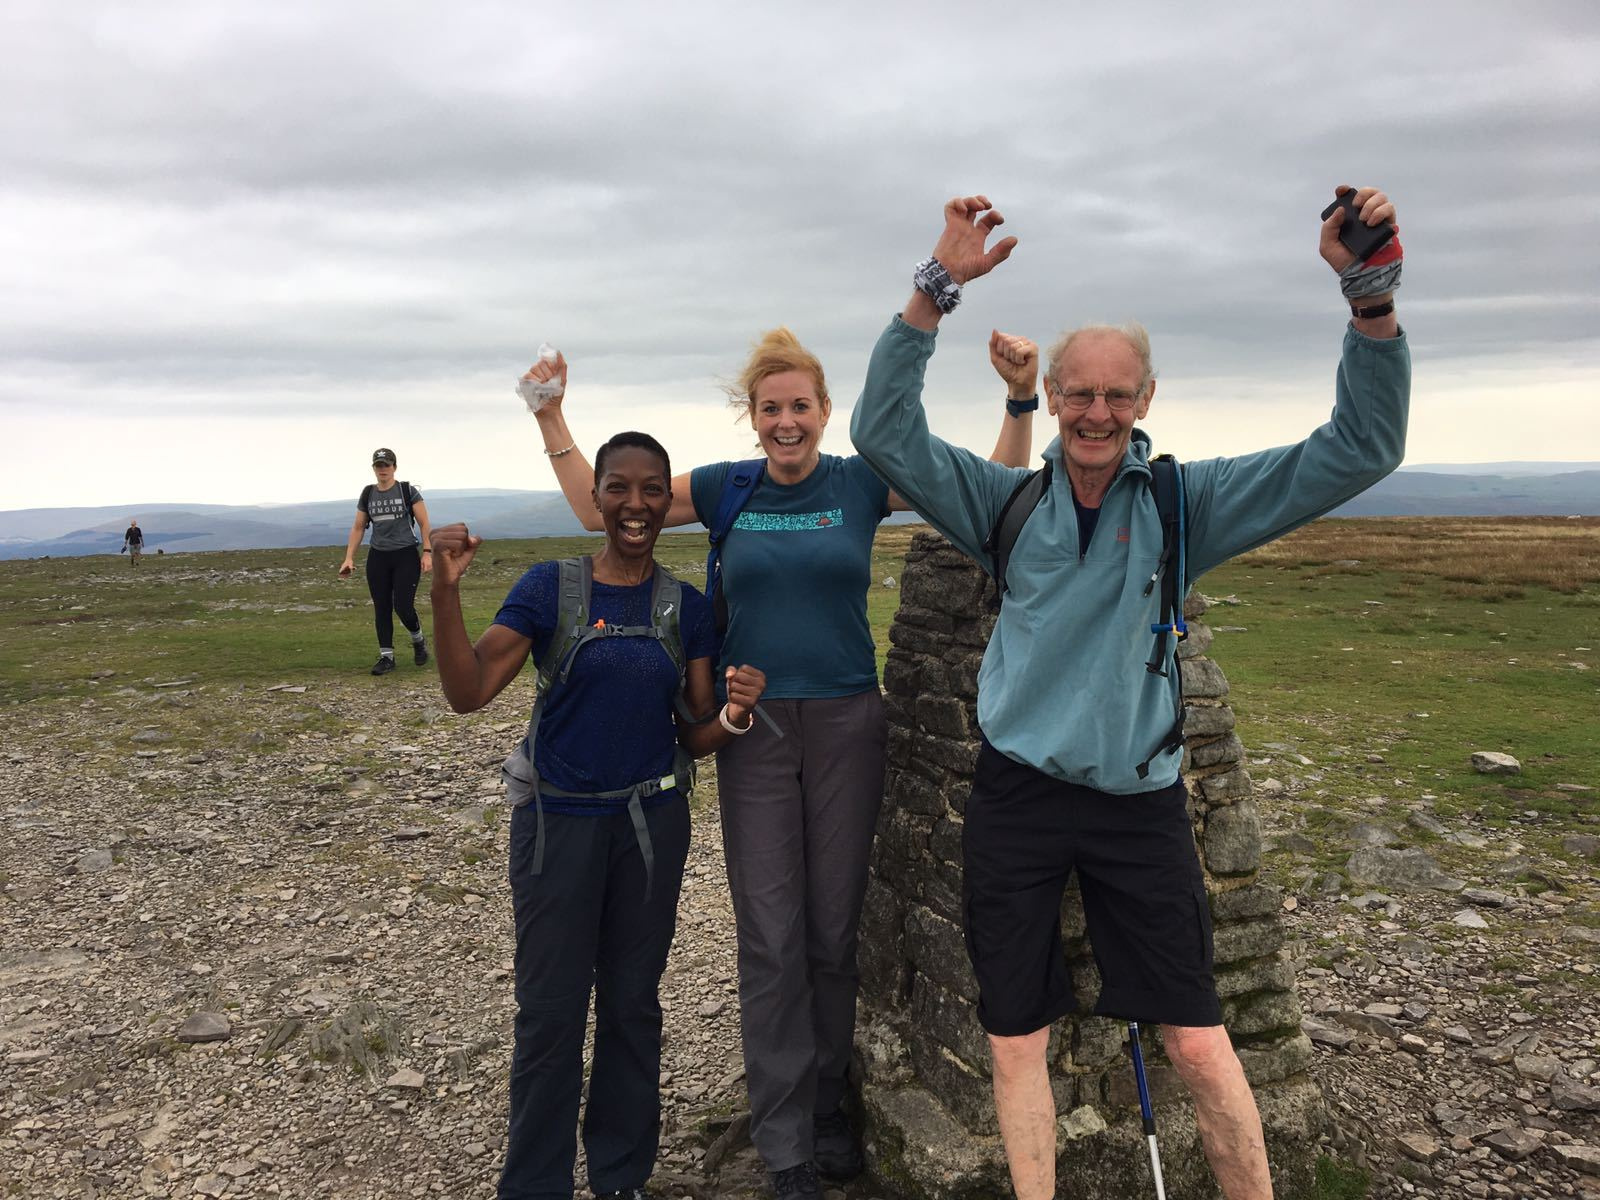 Peter Mitchell, 78, raised £700 for Bancroft Mill by completing the Three Peaks Challenge